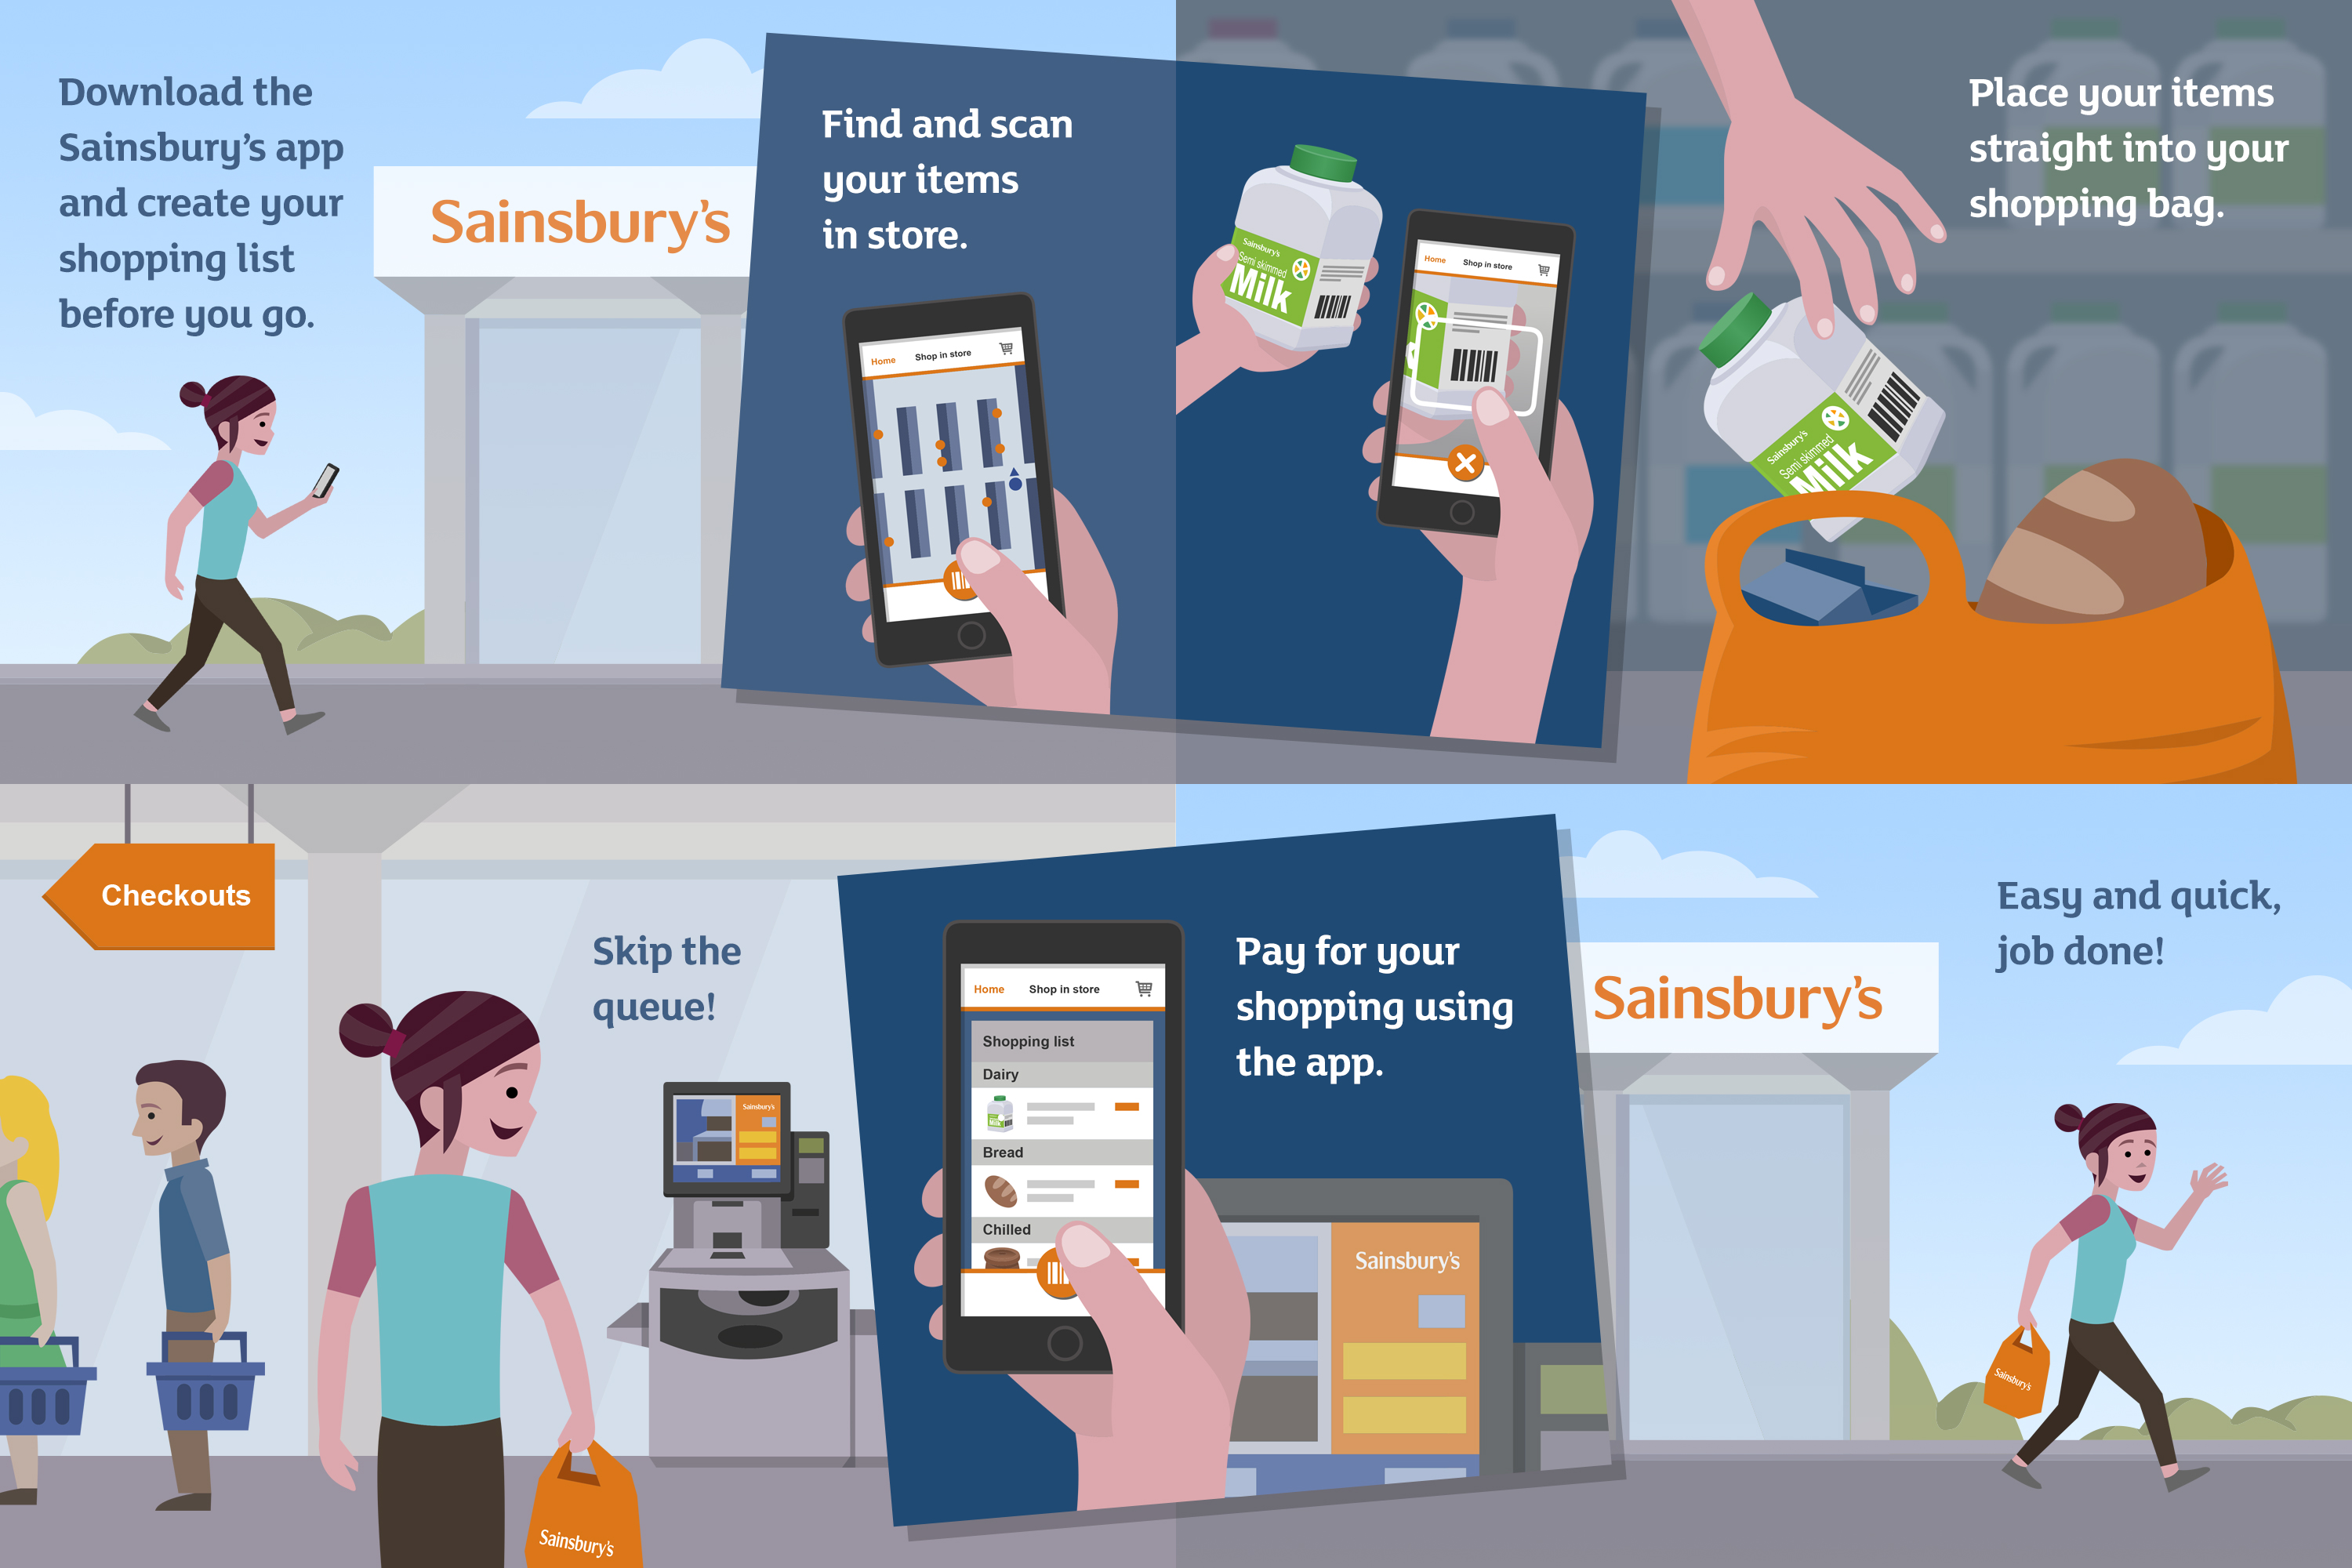 Sainsbury's Scan Mobile App